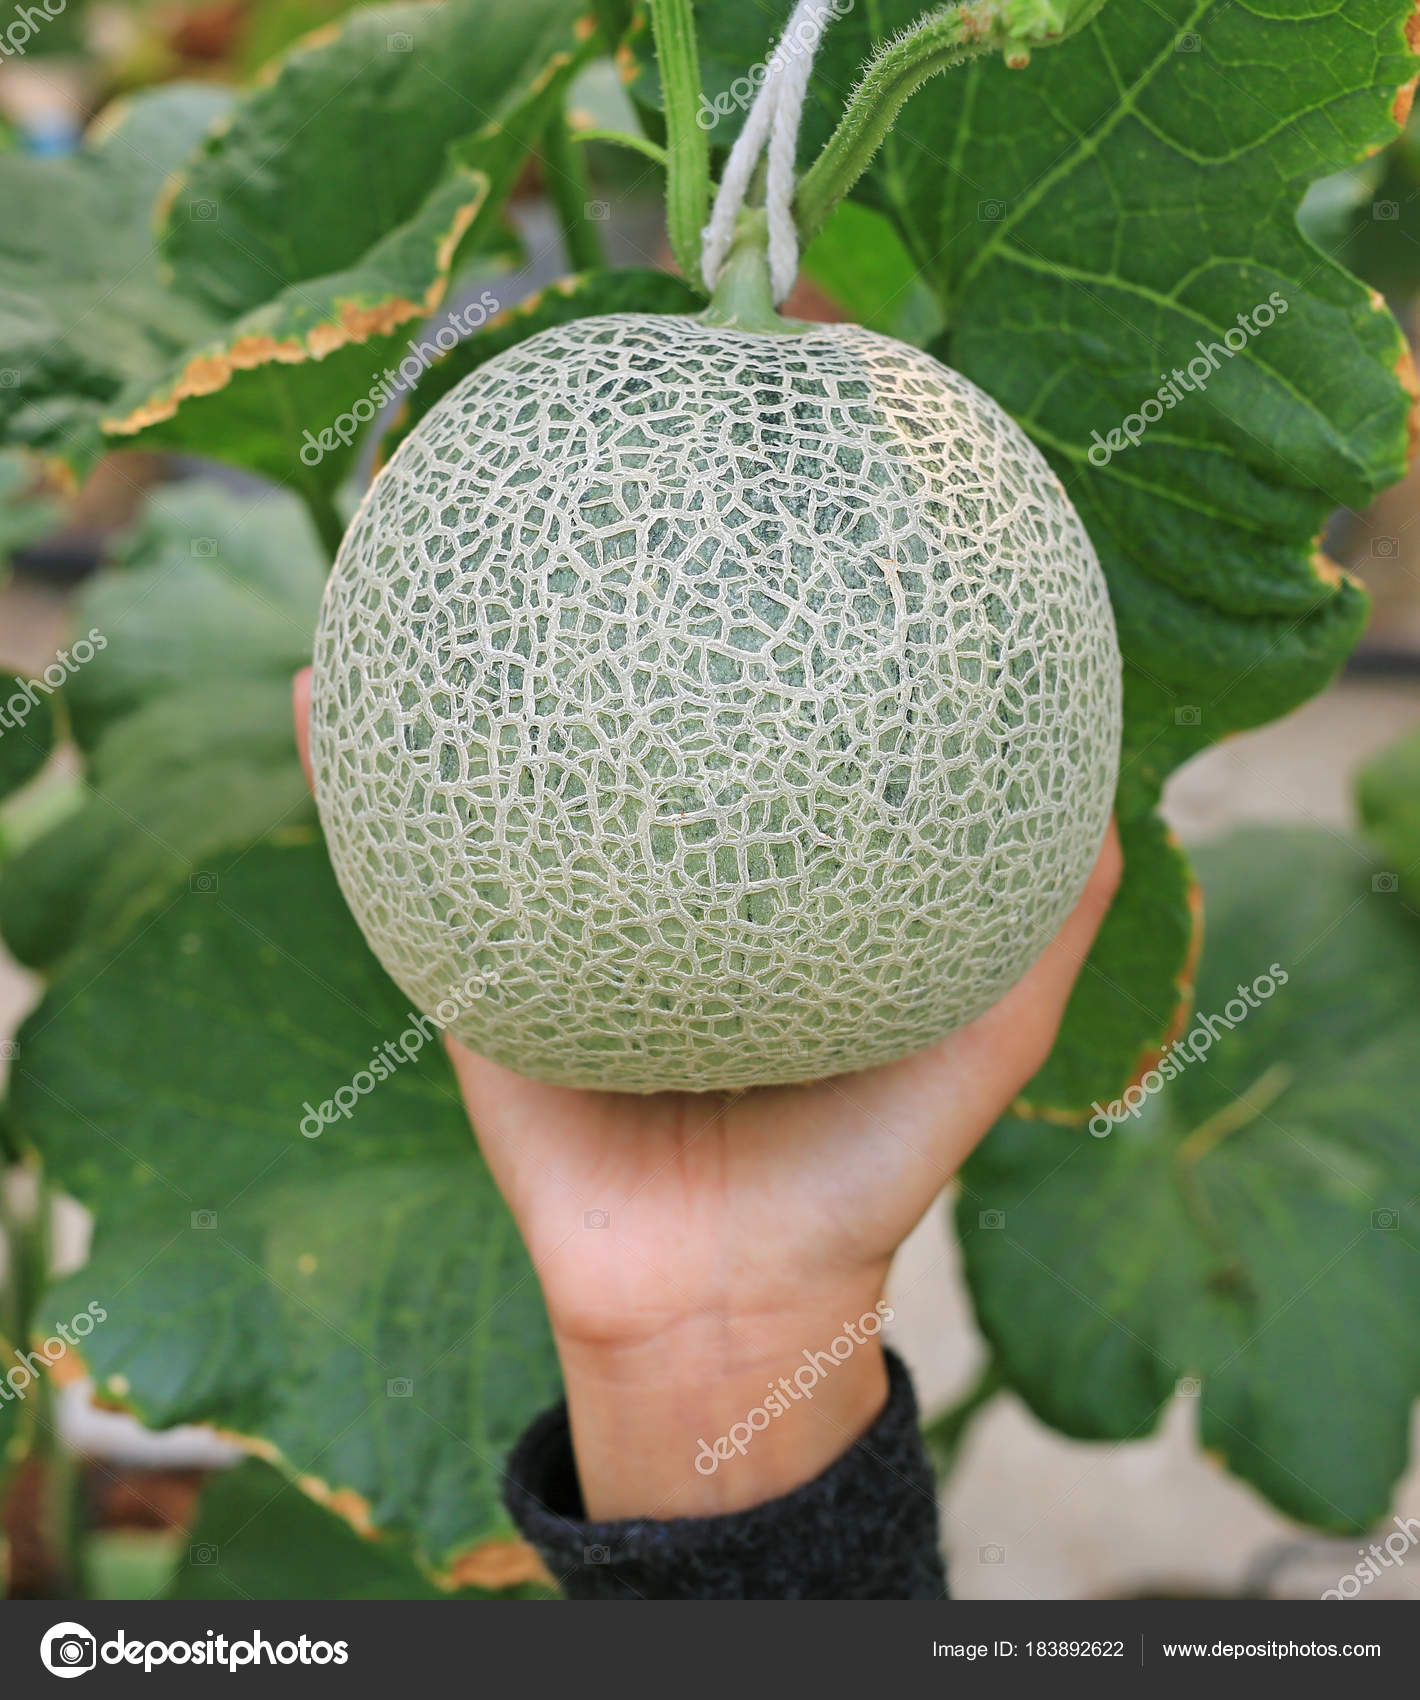 Woman Hand Holding Melon Greenhouse Melon Farm Stock Photo C Civic Dm Hotmail Com 183892622 View recipe this link opens in a new tab. https depositphotos com 183892622 stock photo woman hand holding melon greenhouse html